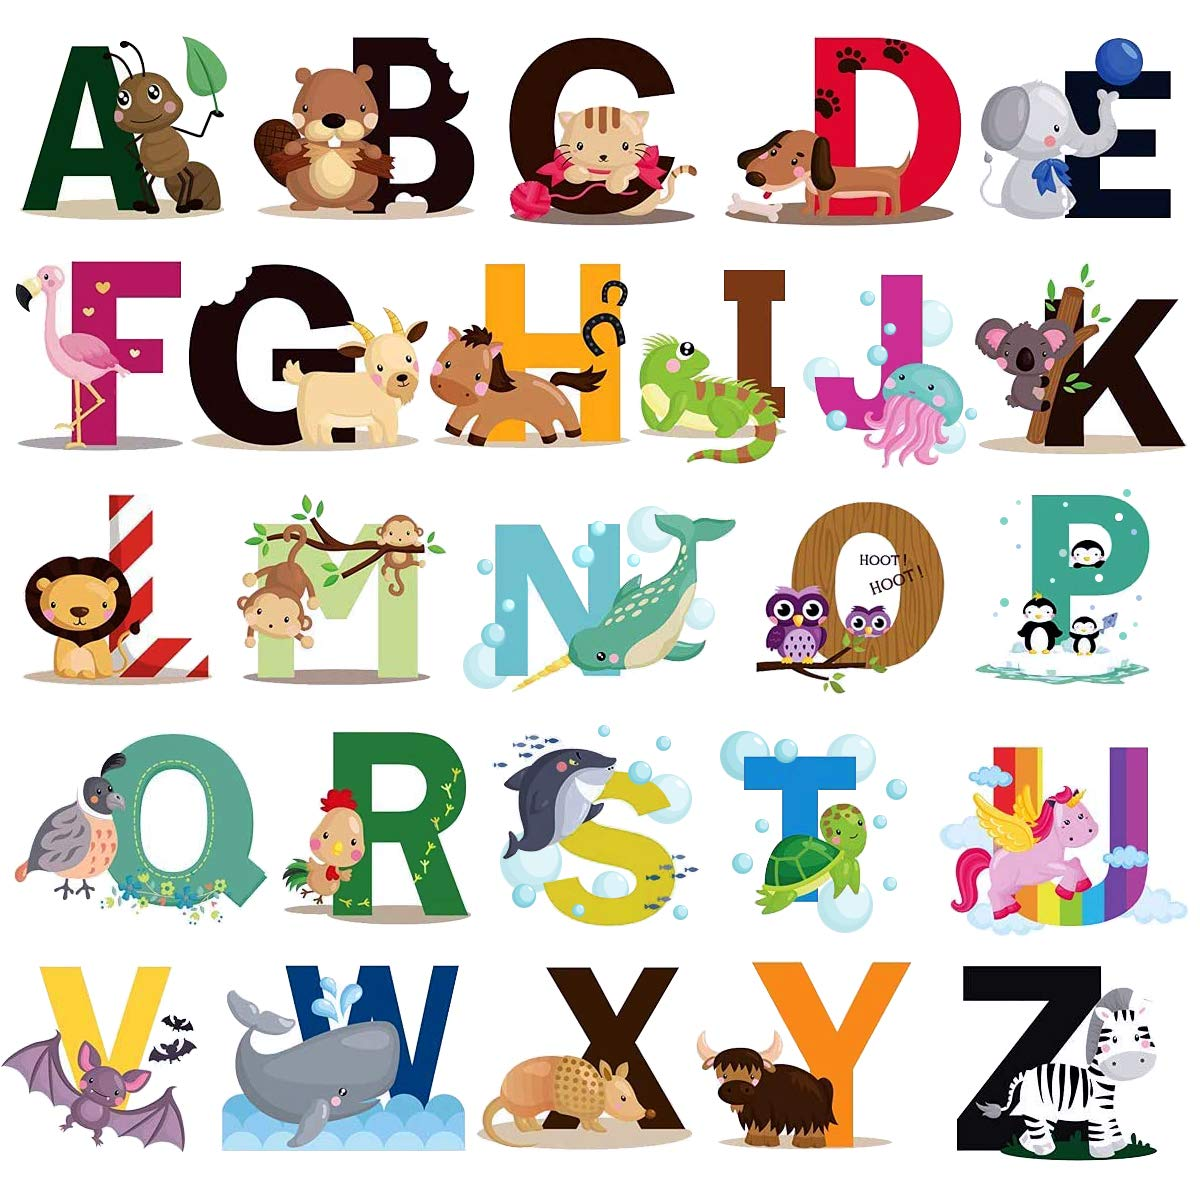 Animal Alphabet Wall Decals, ABC Stickers Alphabet Decals, Classroom Wall Decals, ABC Wall Decals, Wall Letters Stickers, Removable Animal Alphabet ABC Wall Stickers for Kids Nursery Room Decor